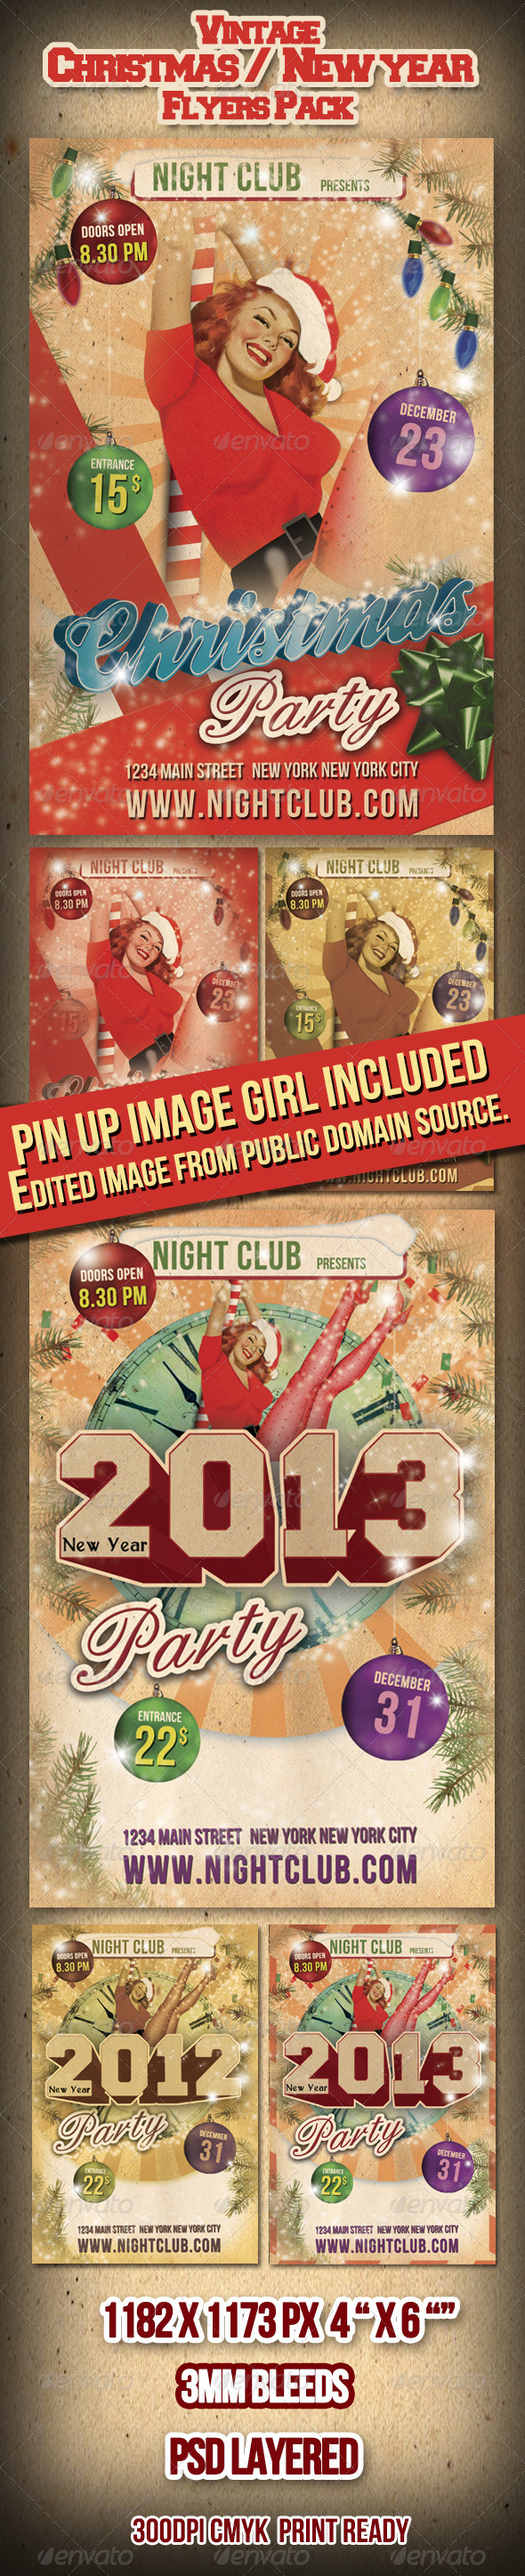 GraphicRiver Vintage Christmas 2012 New Year Flyers Pack 930266